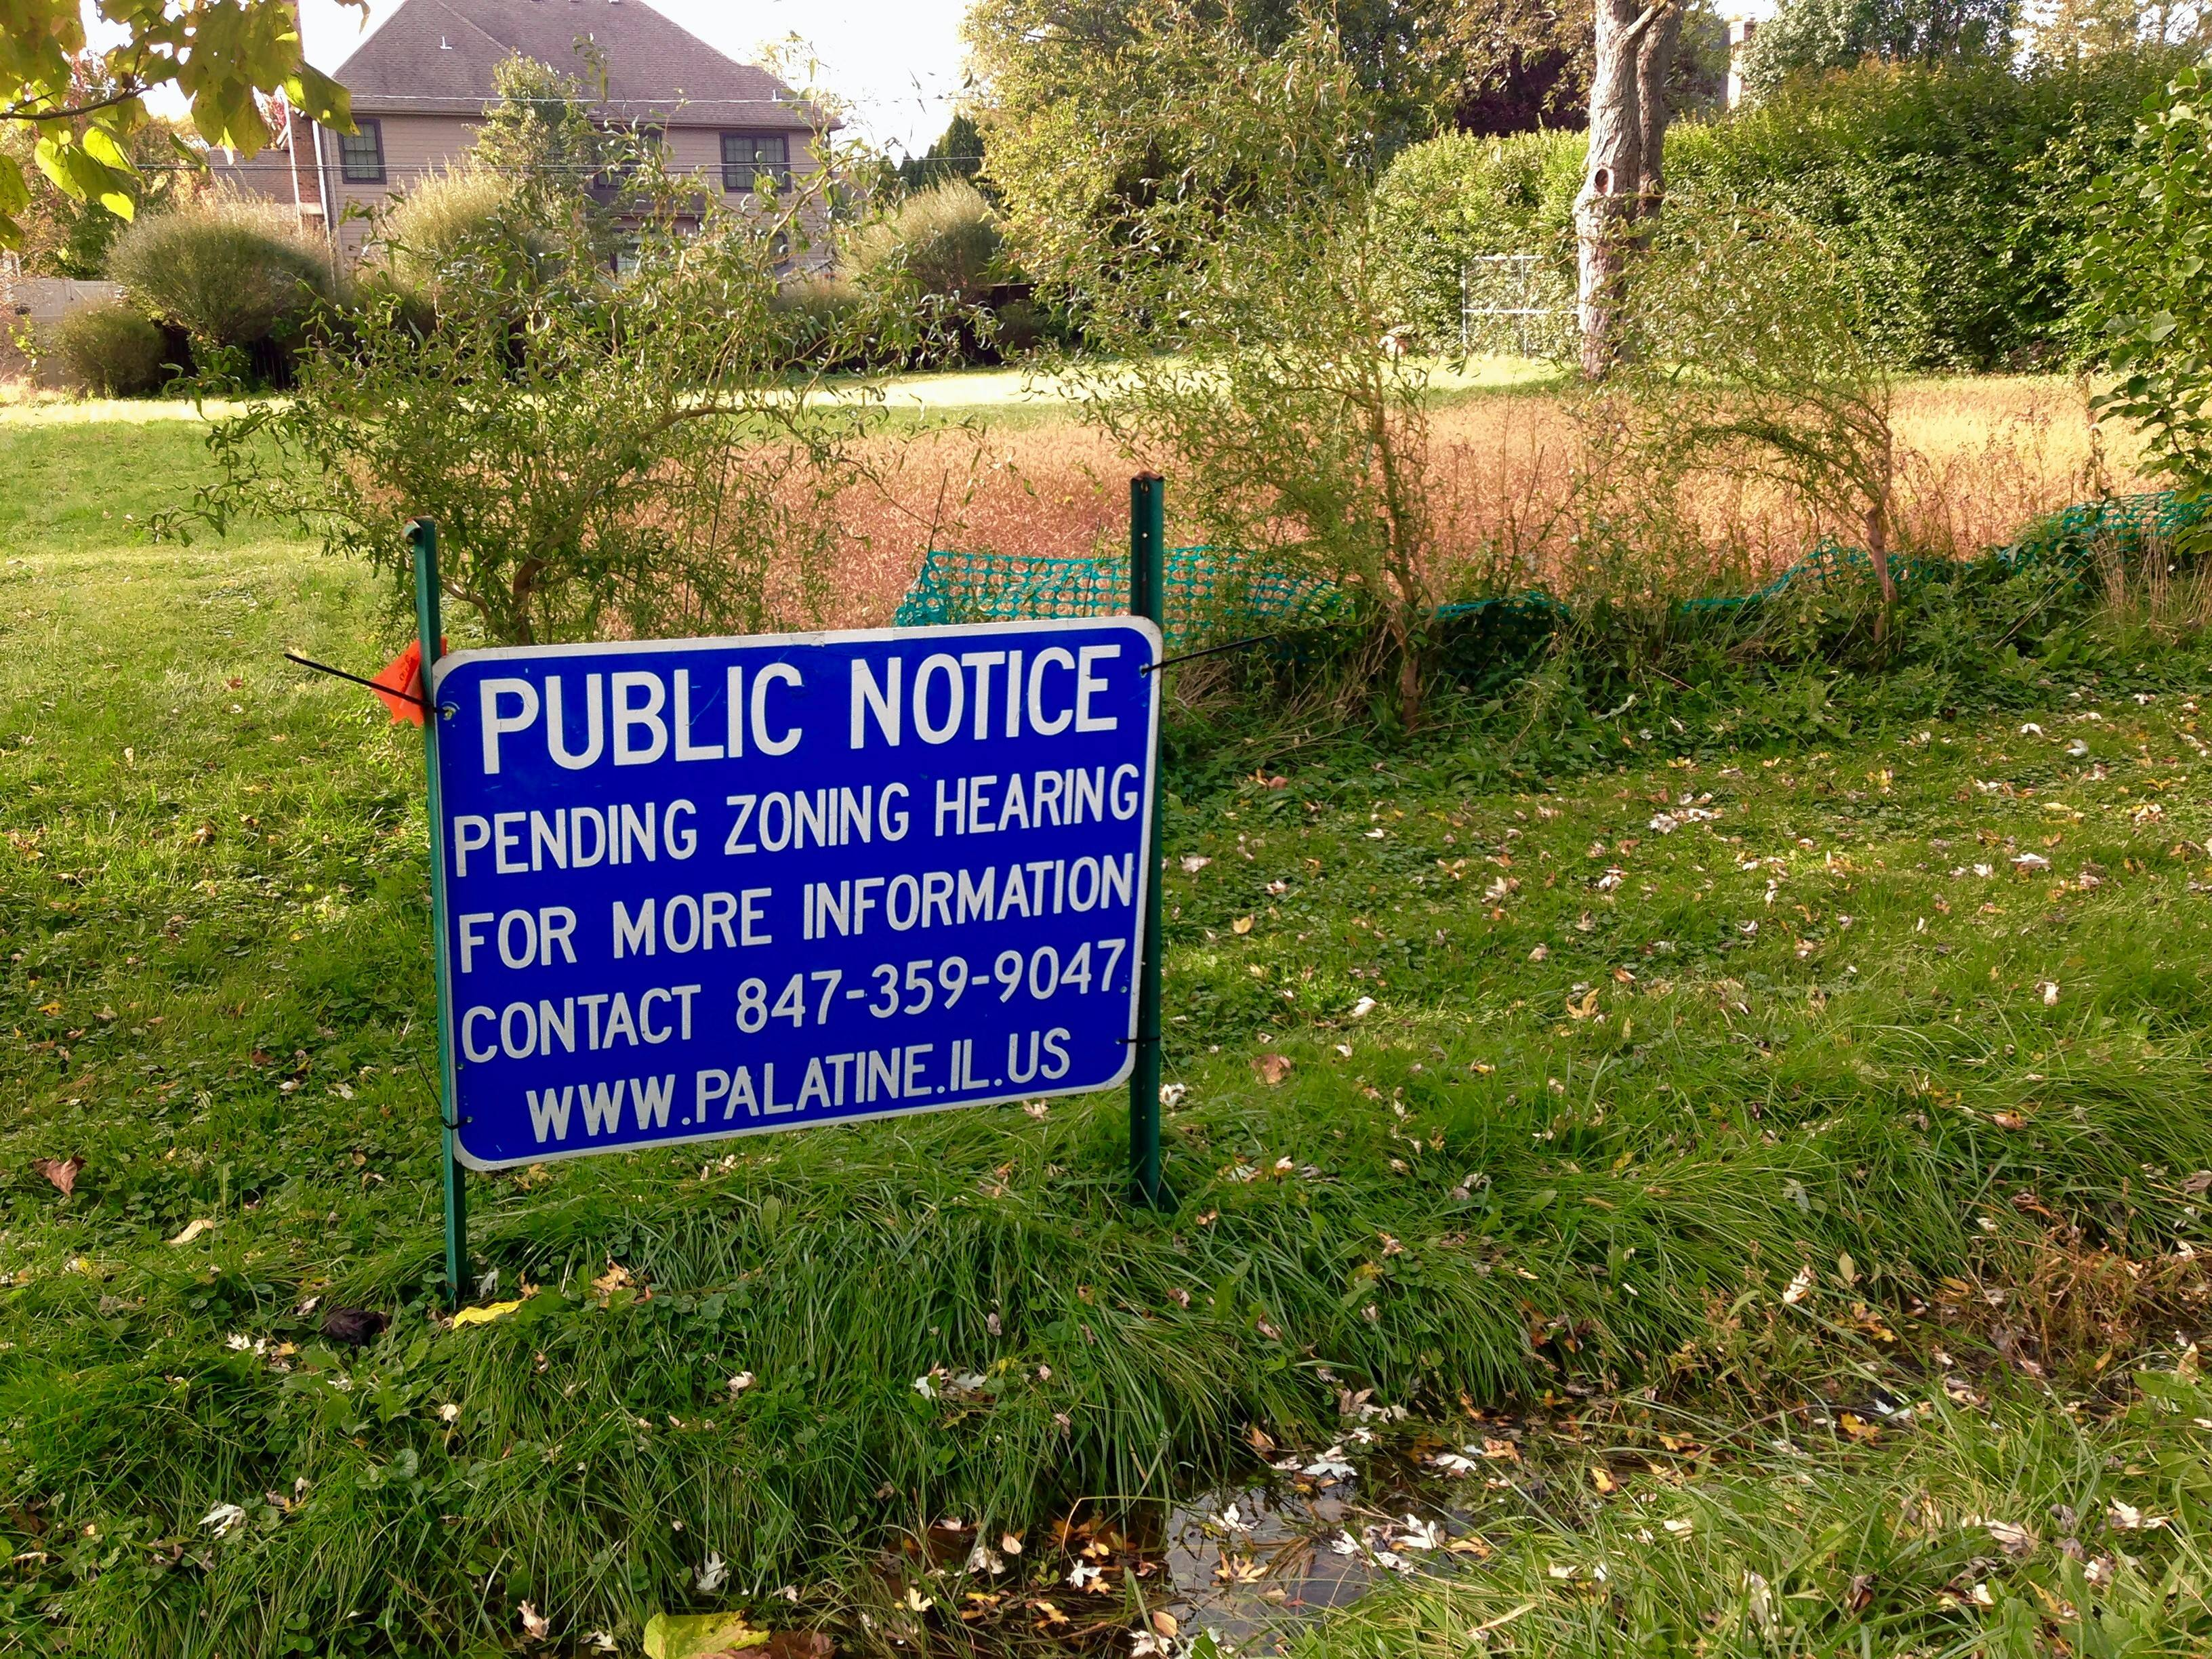 Developer working on stormwater concerns from Palatine home proposal